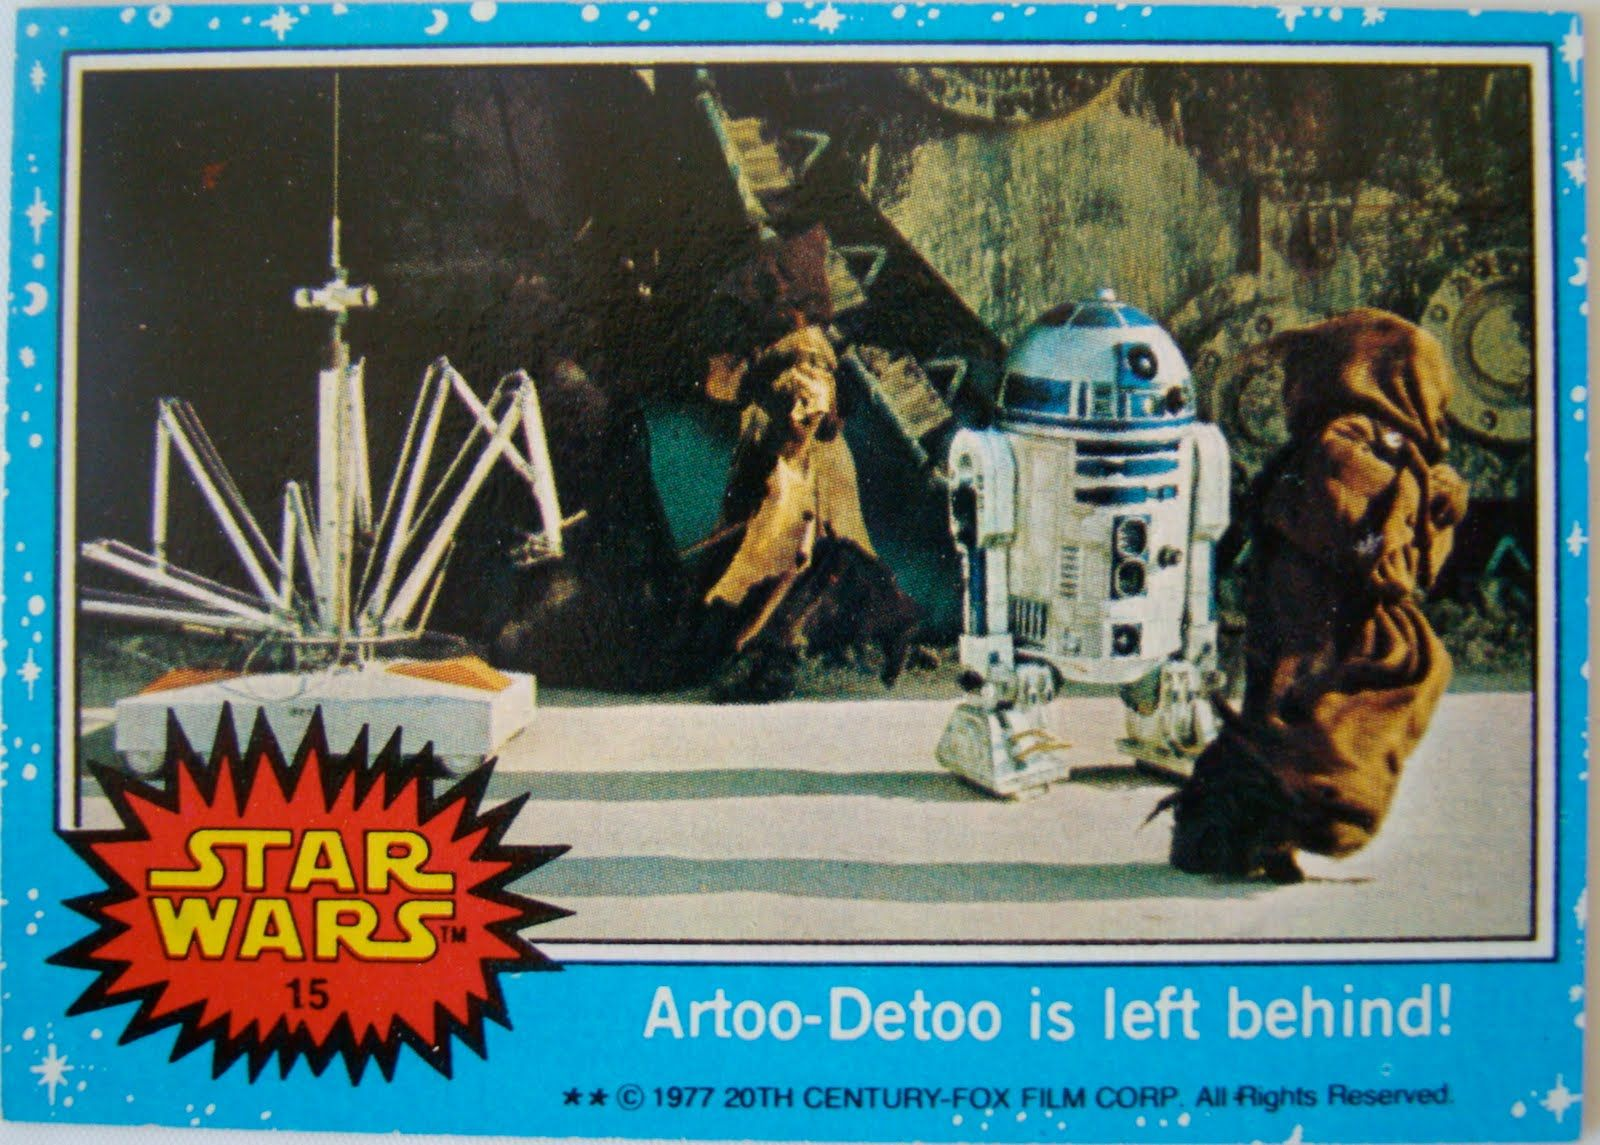 star wars 1977 trading cards - Google Search